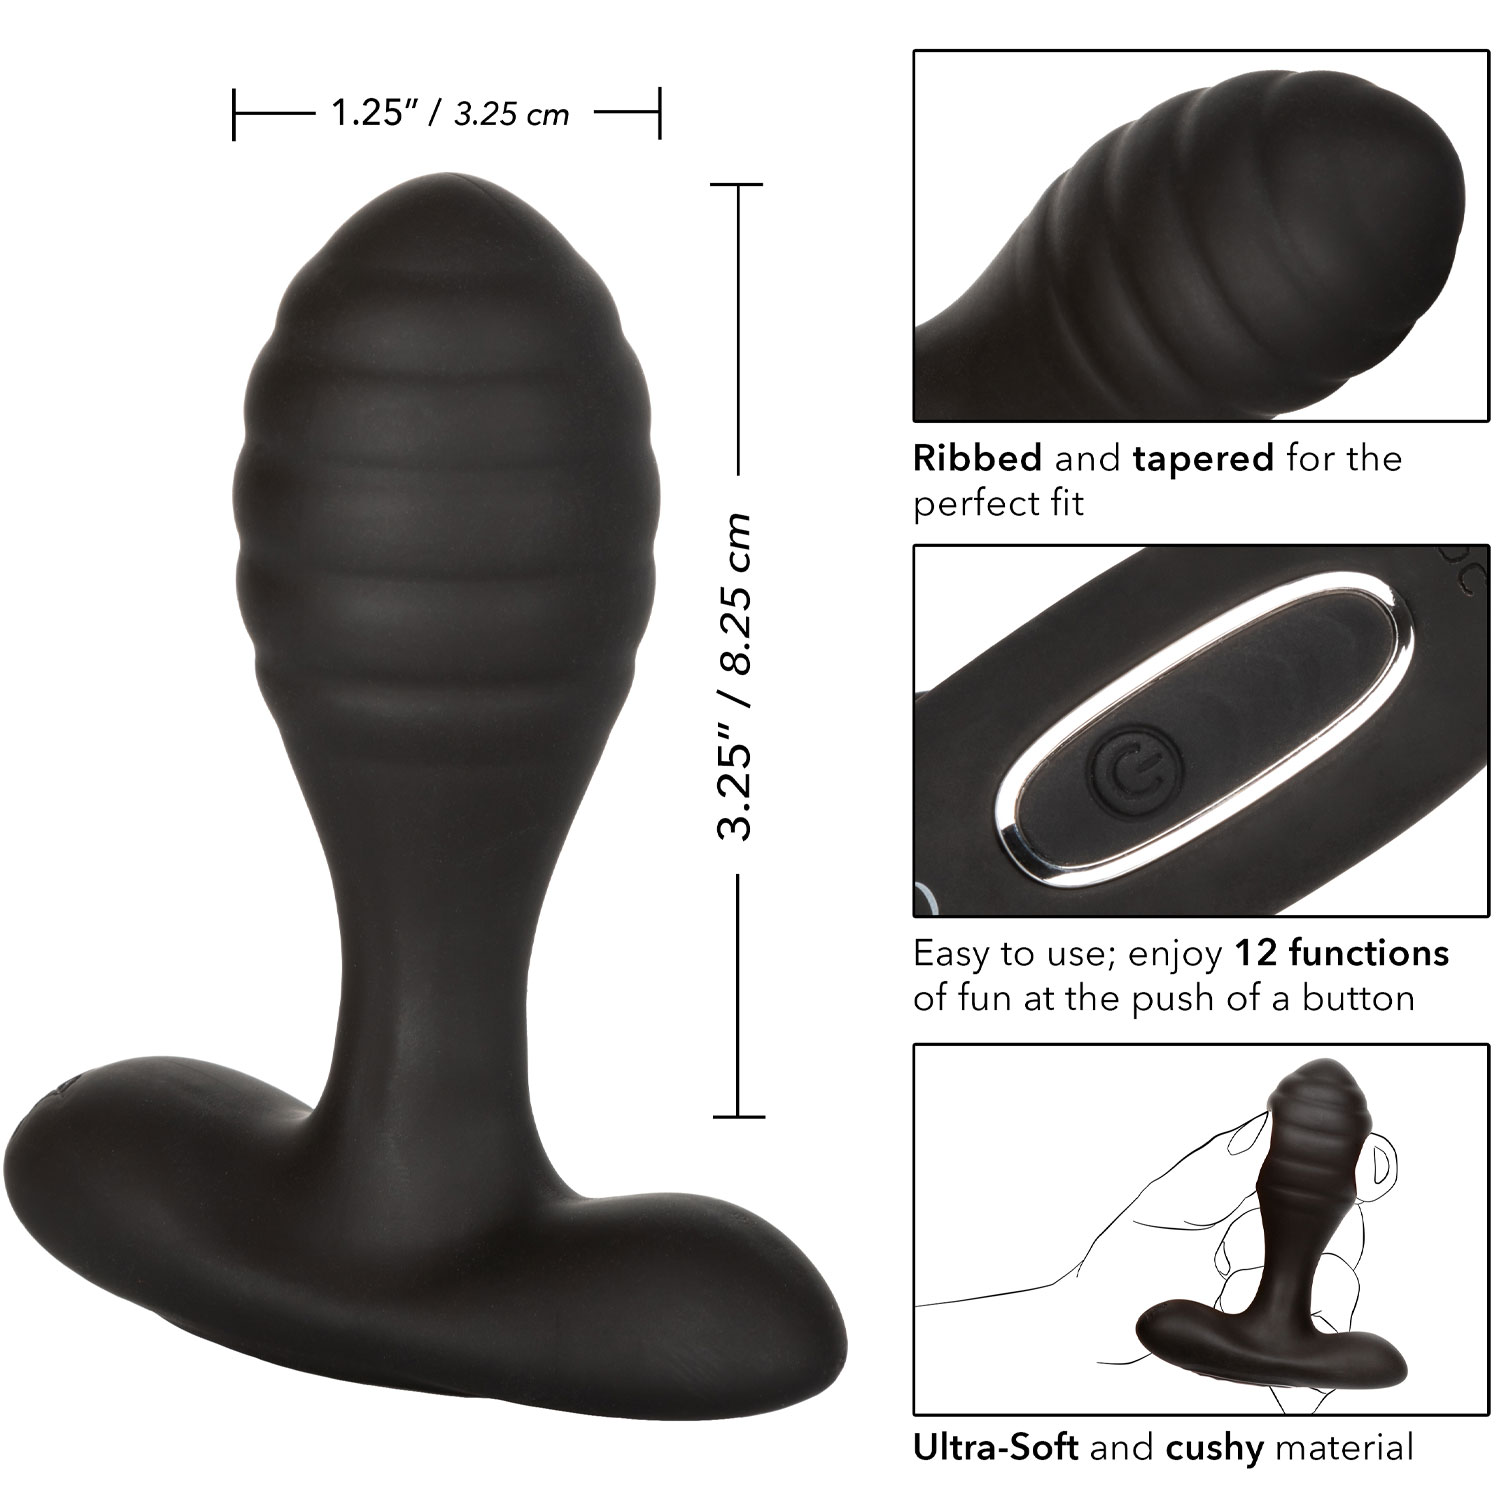 Eclipse Ultra-Soft Silicone Vibrating Anal Probe - Measurements